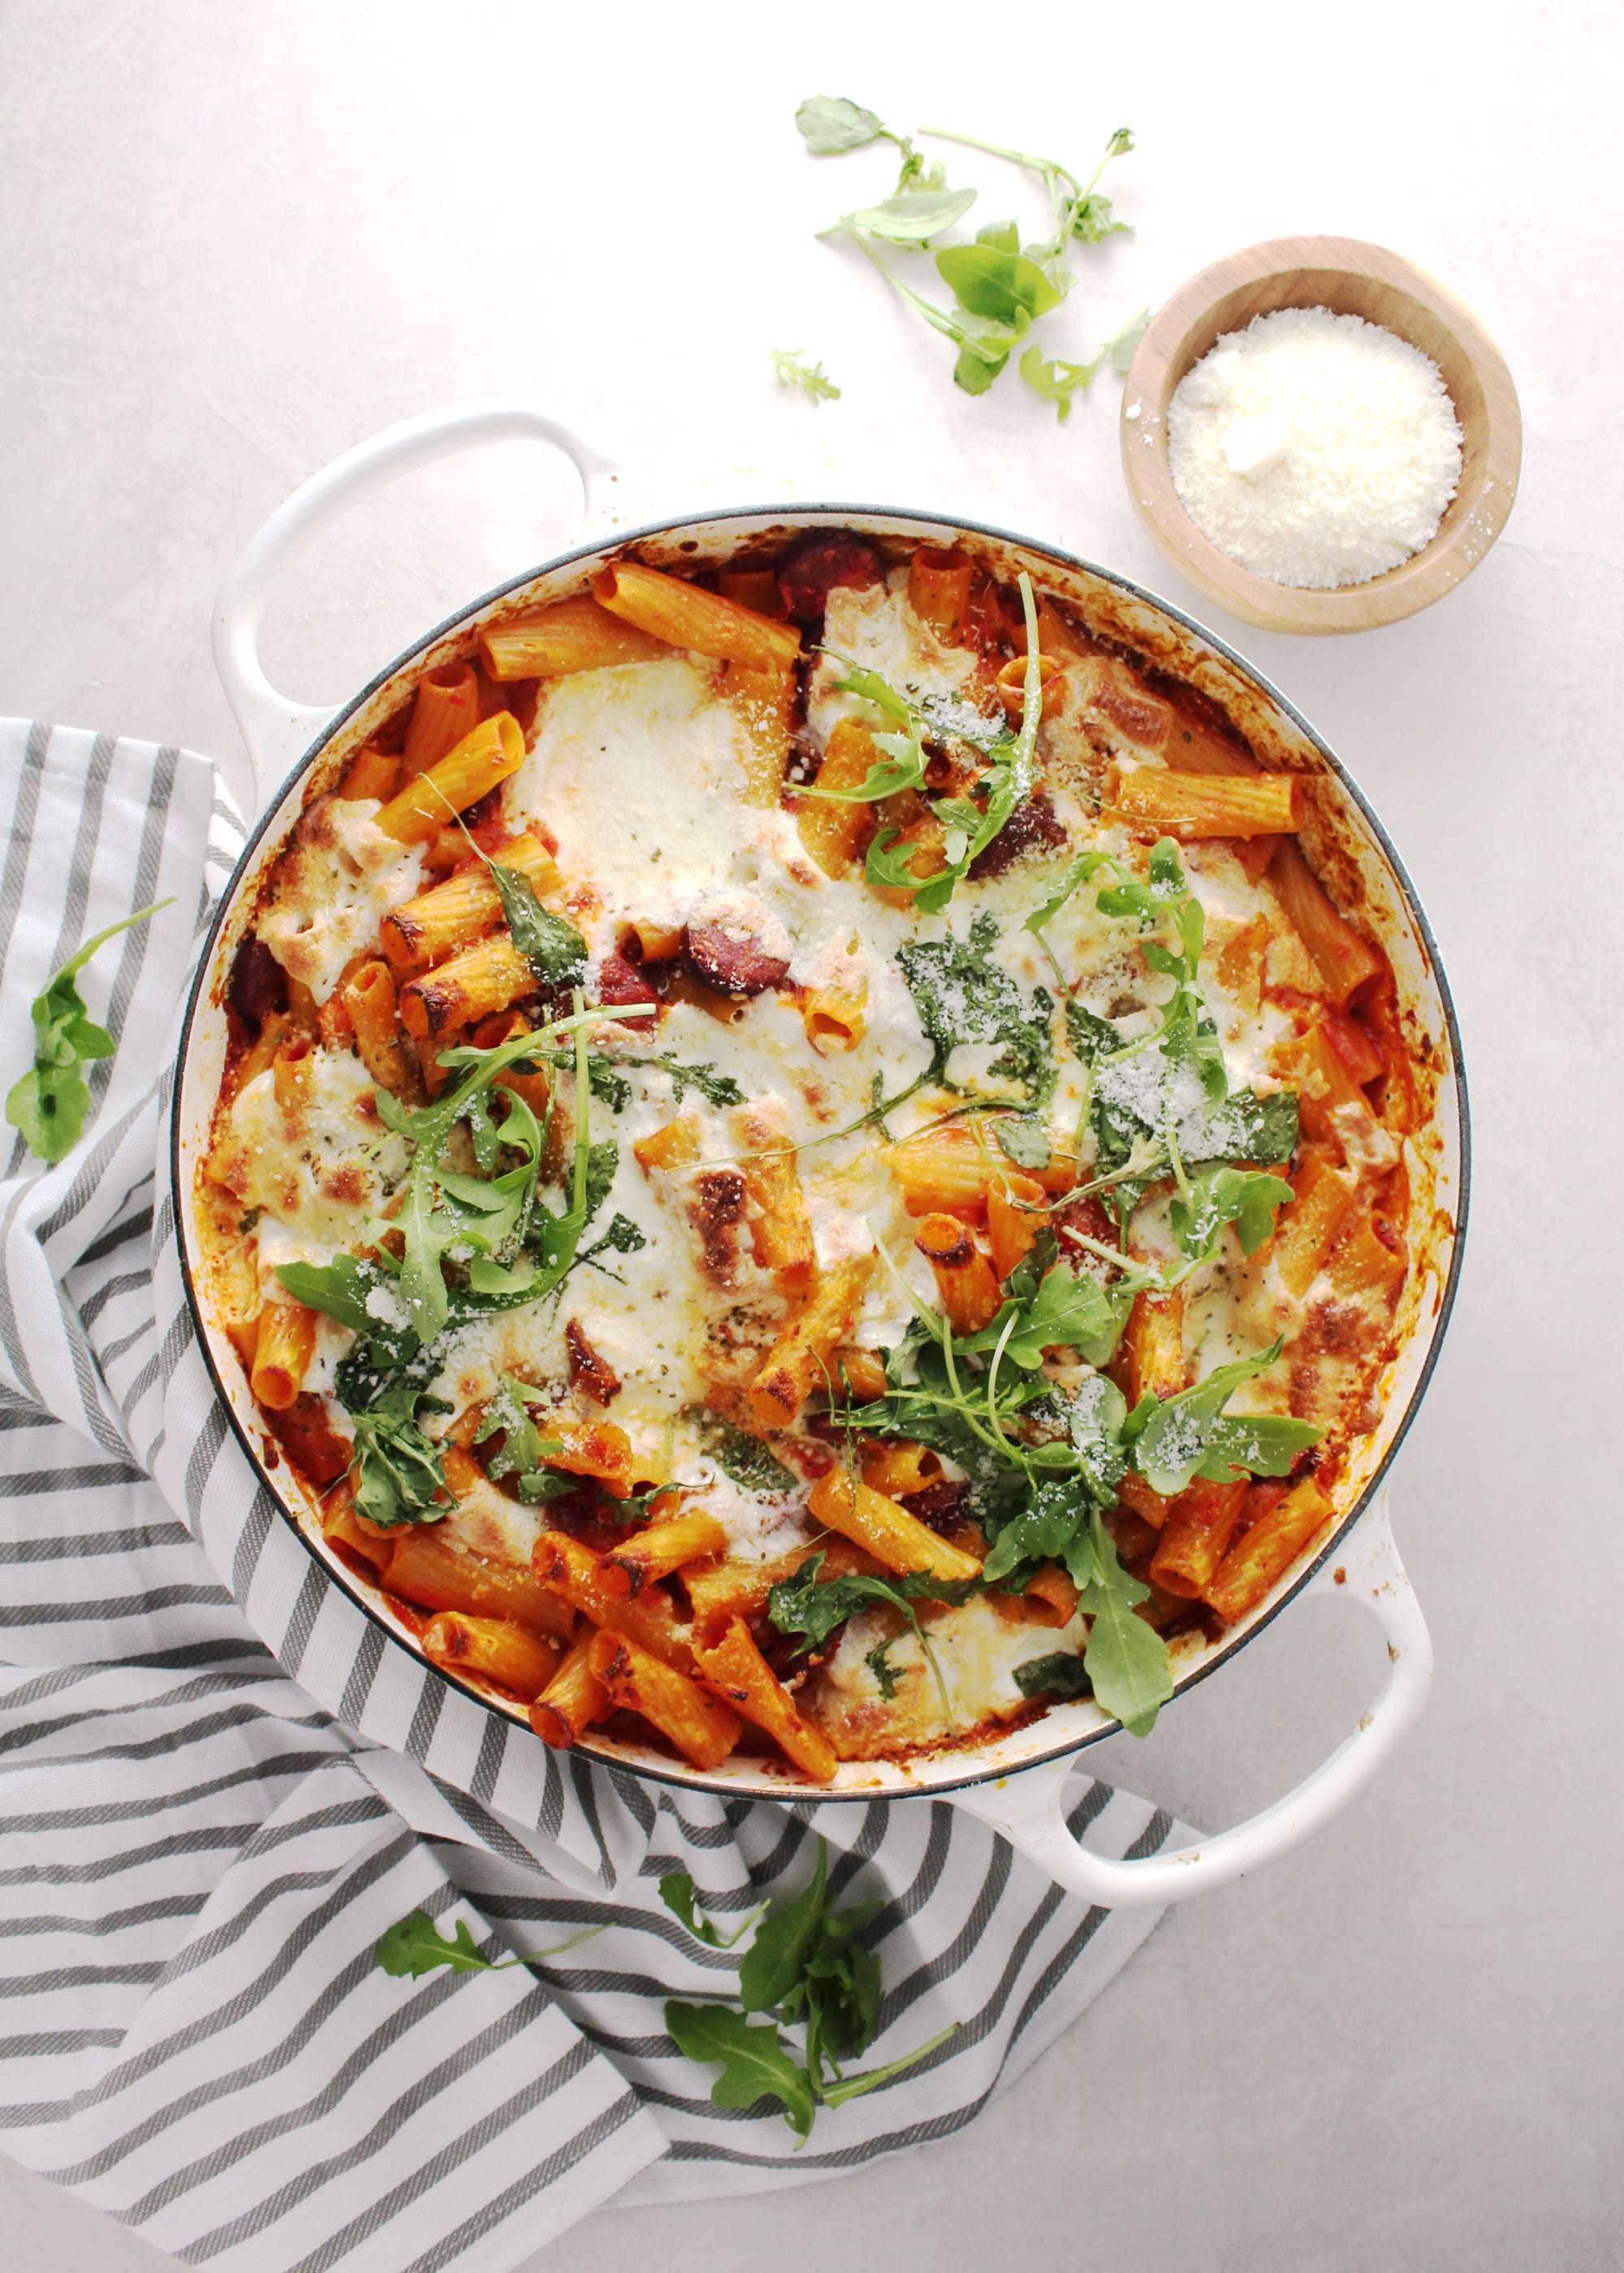 Baked rigatoni with red peppers and topped with fresh thyme in a white skillet.